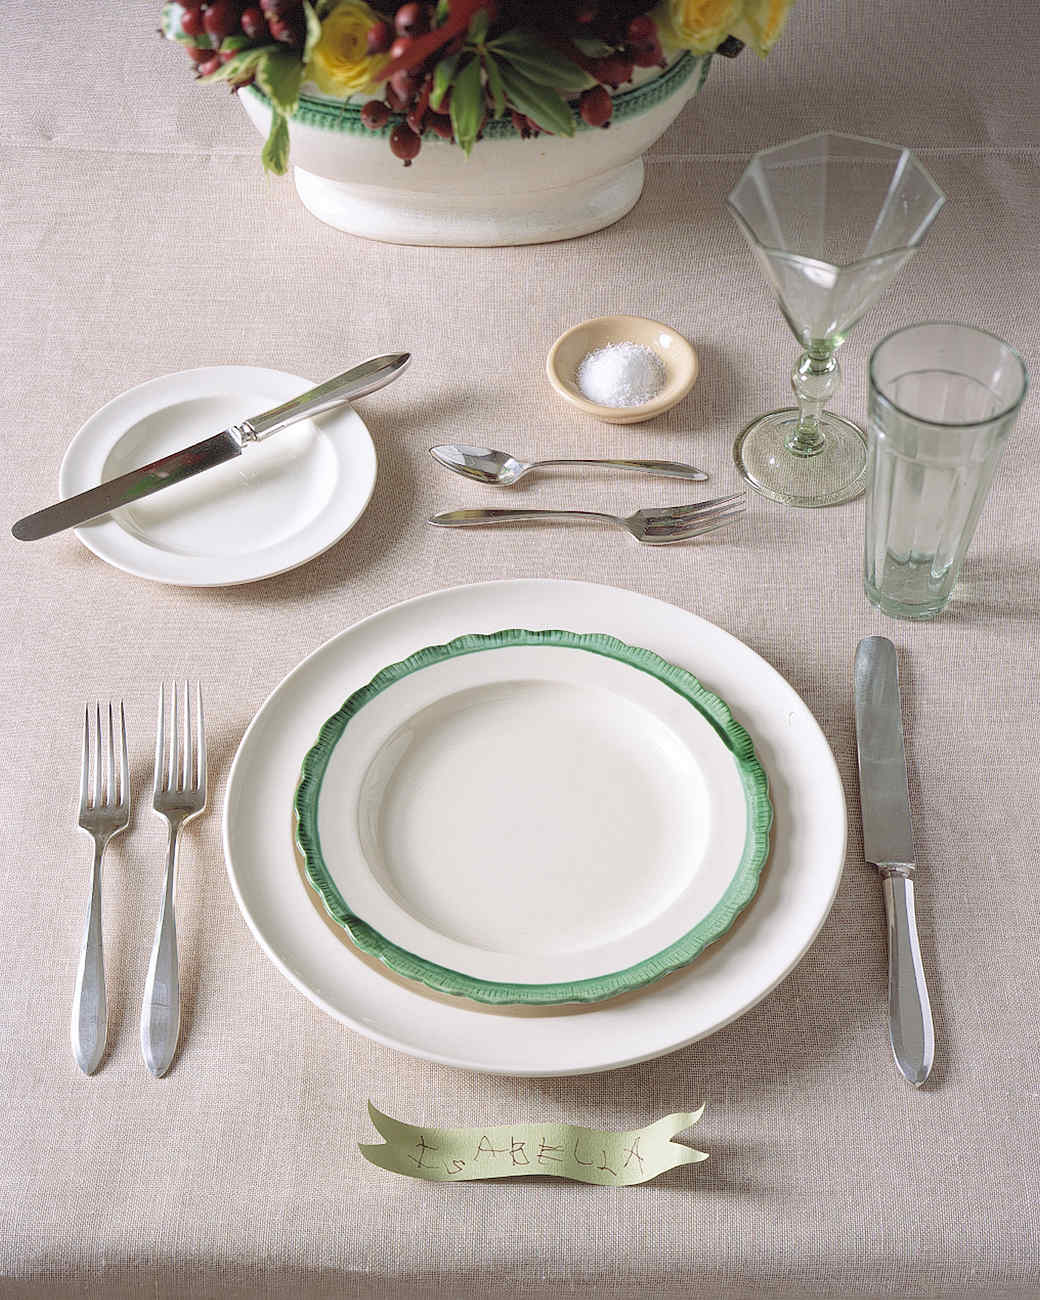 table-setting-2-a98979.jpg